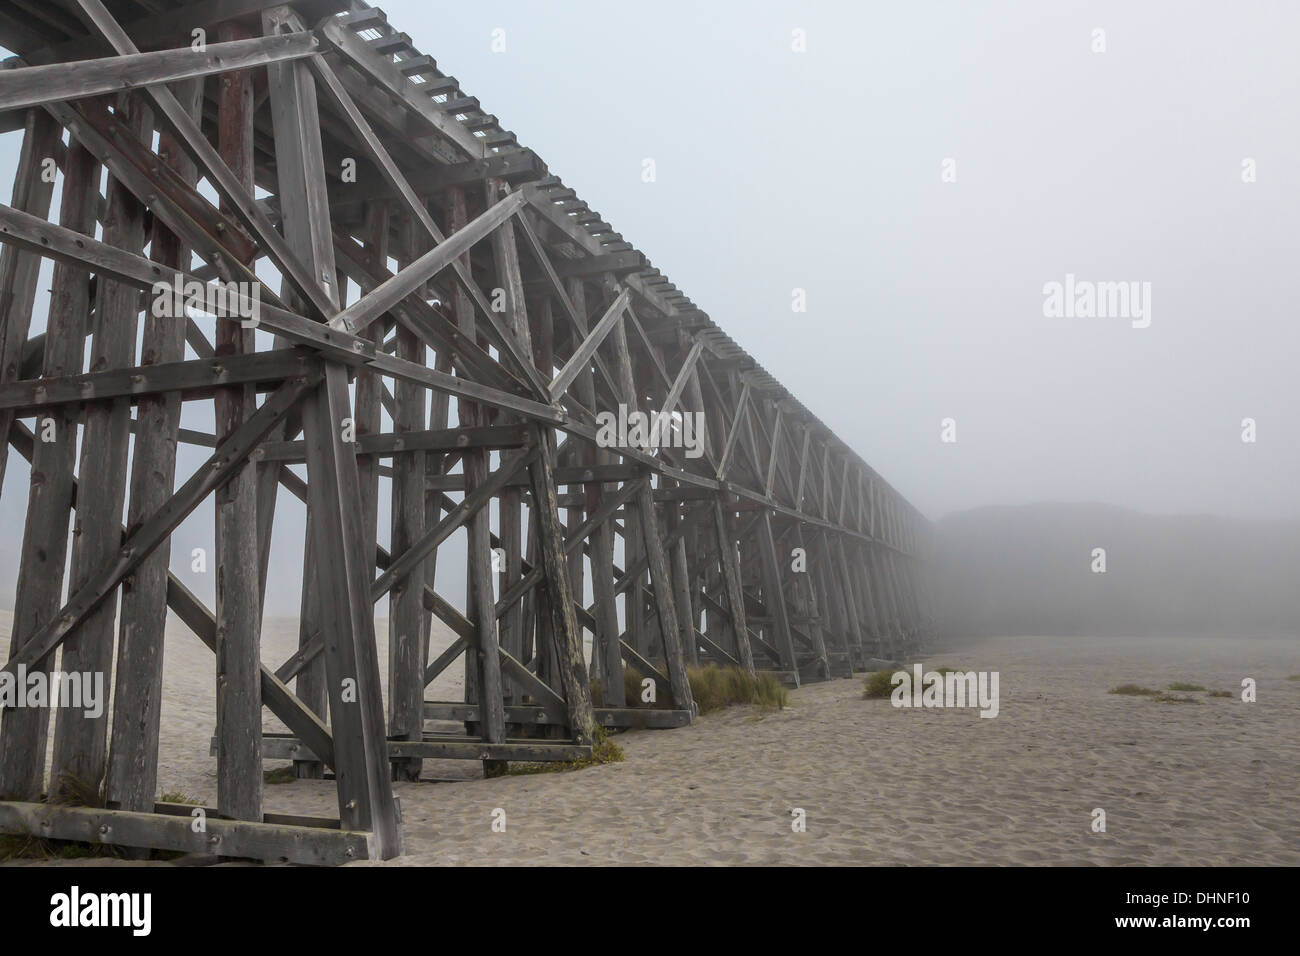 The Pudding Creek Trestle, part of the Ten Mile Beach Trail near Fort Bragg, in fog, MacKerricher State Park, California, USA - Stock Image